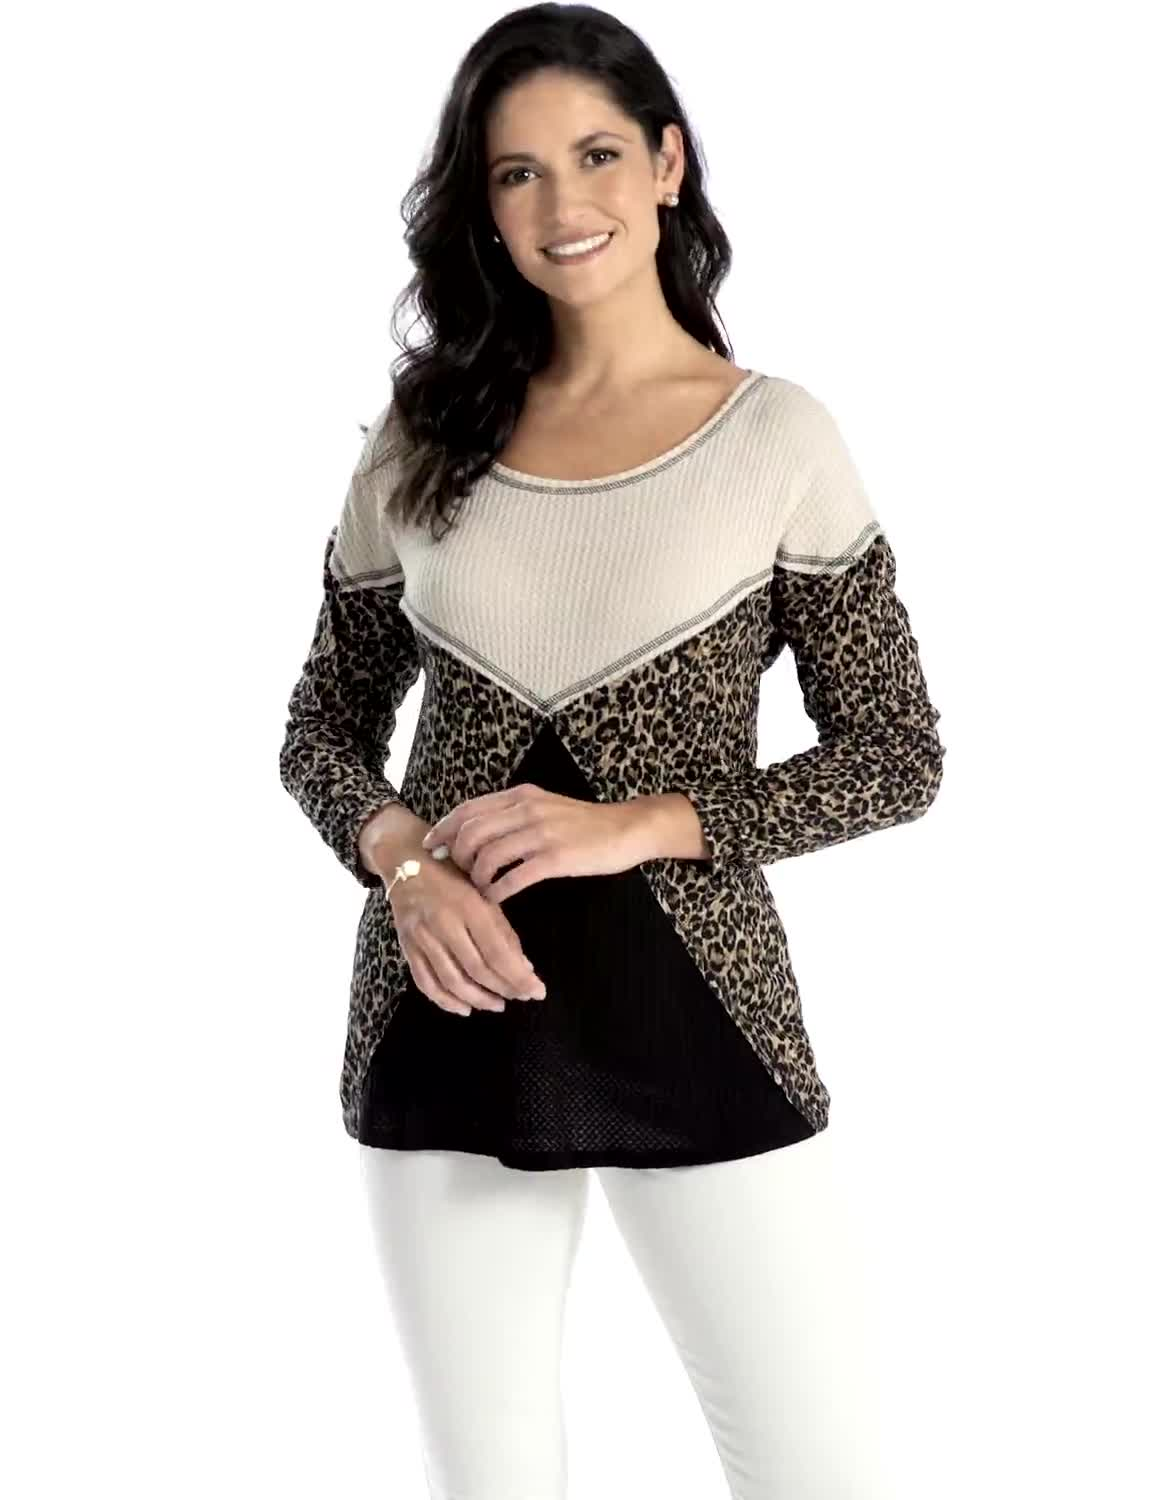 Mixed Animal Thermal Print Knit Top - Video